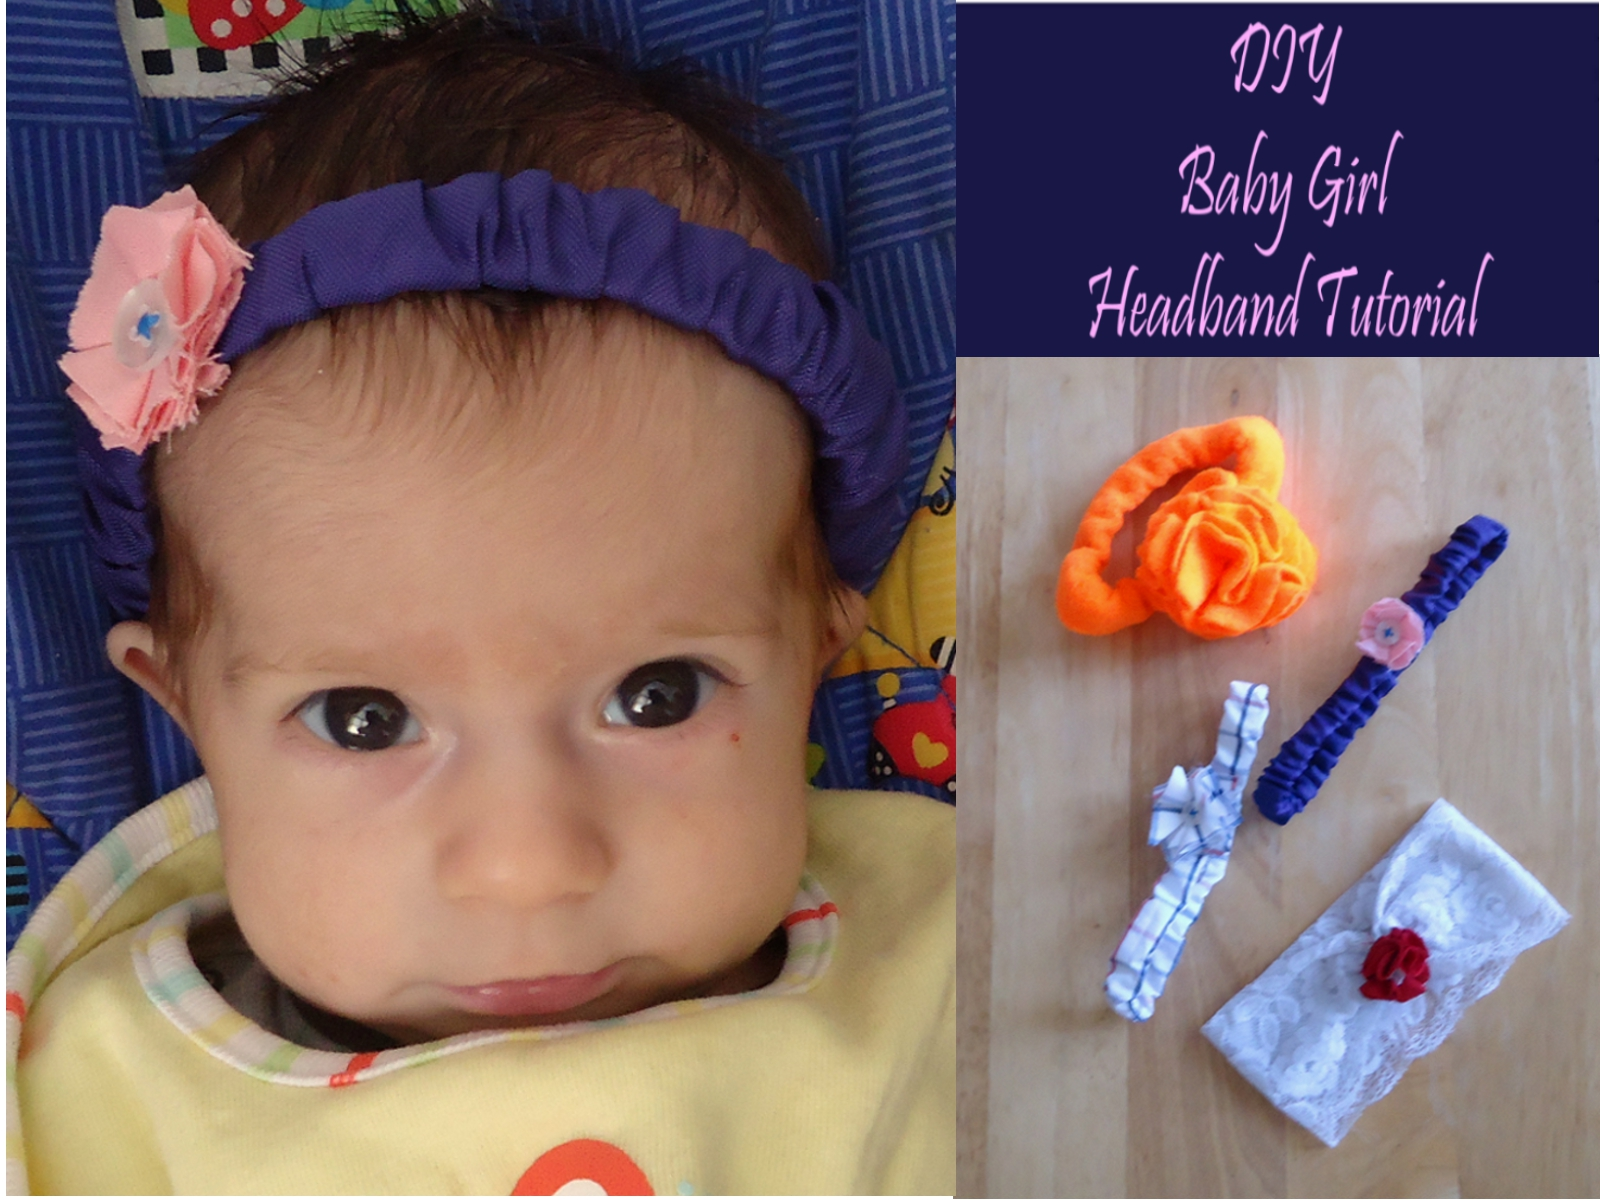 Baby Girl Headband Tutorial dfe72a7d3b3